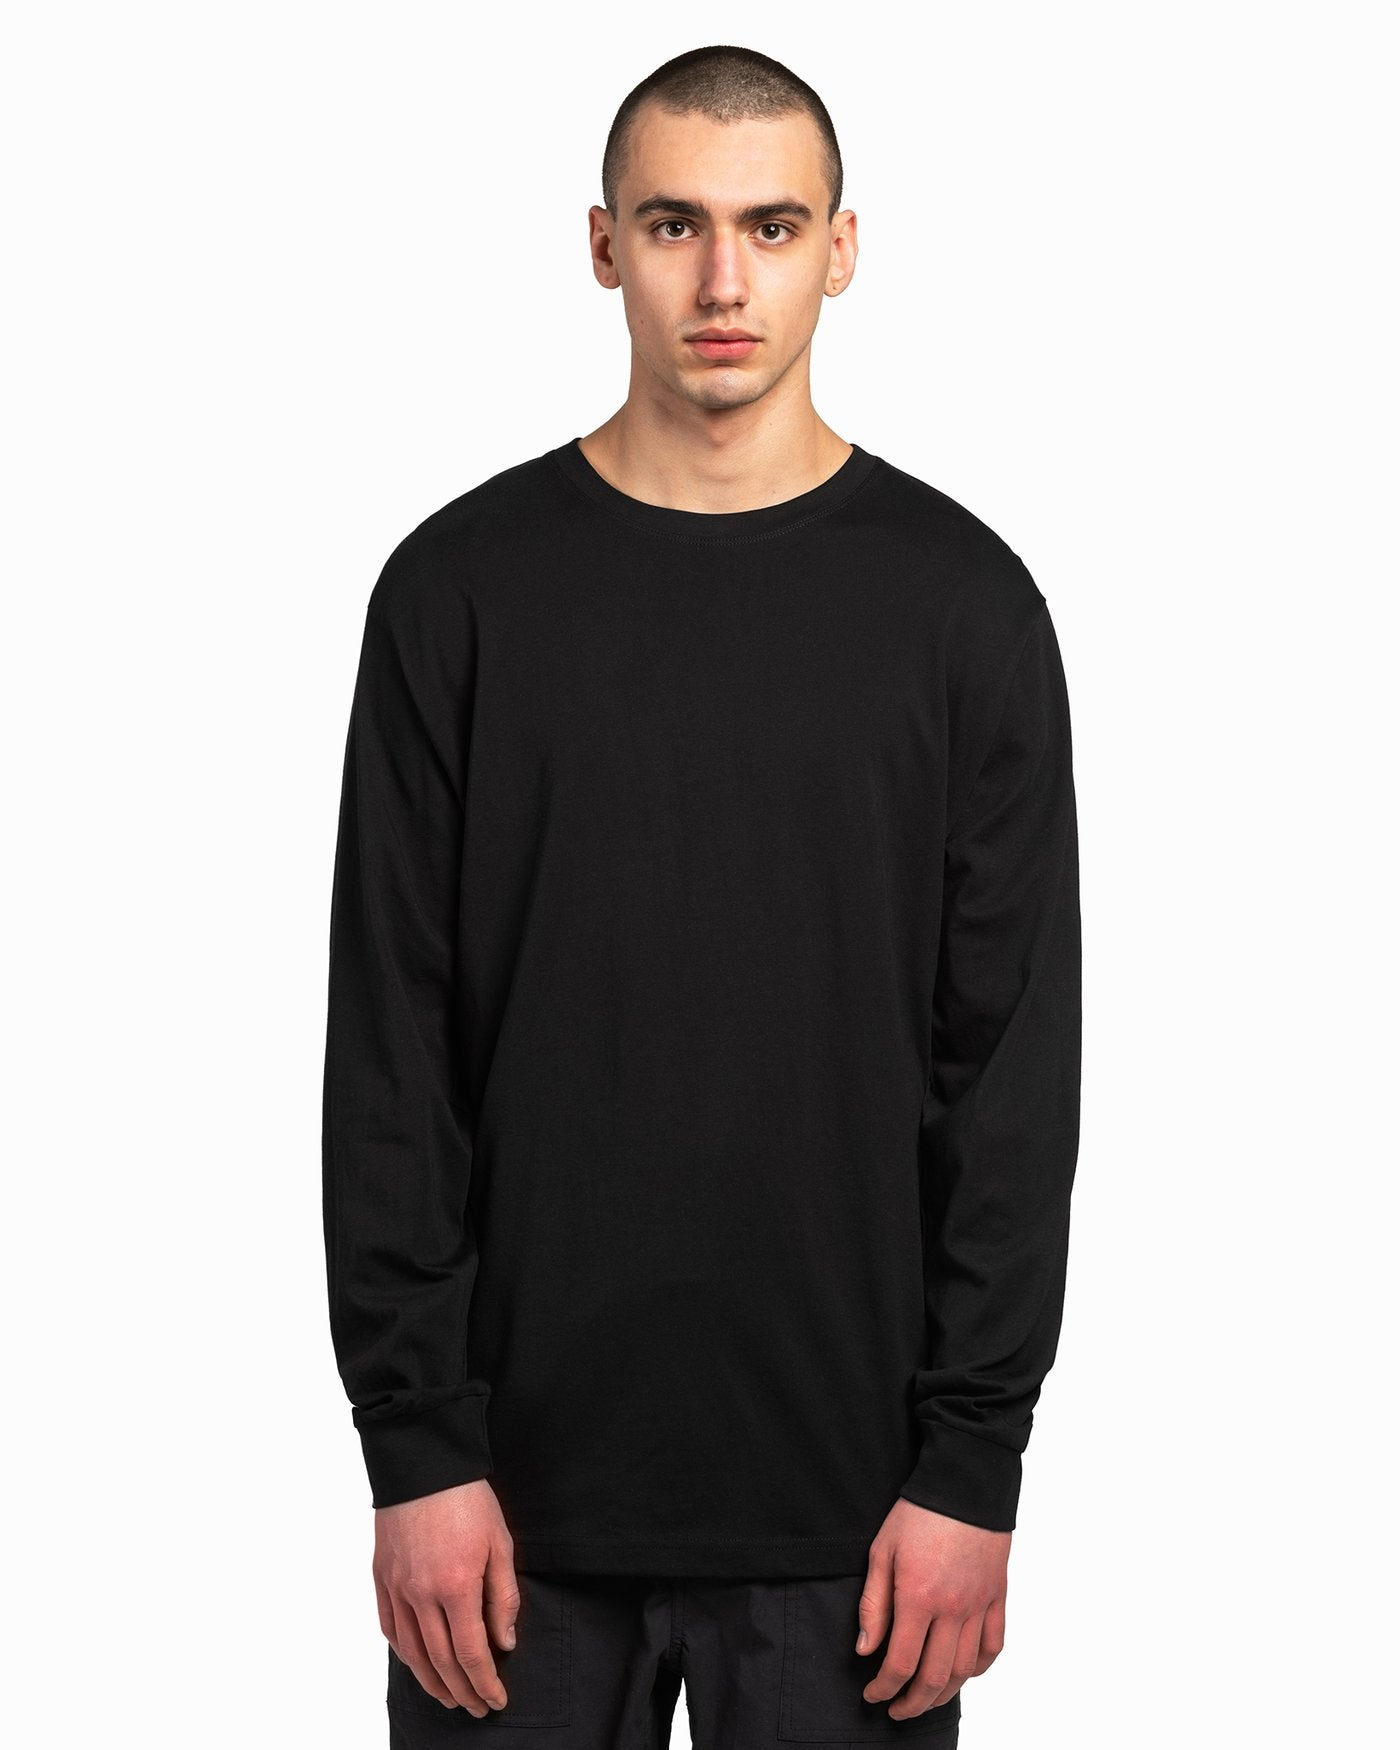 Black American Grown Soft Supima® Cotton Long Sleeve